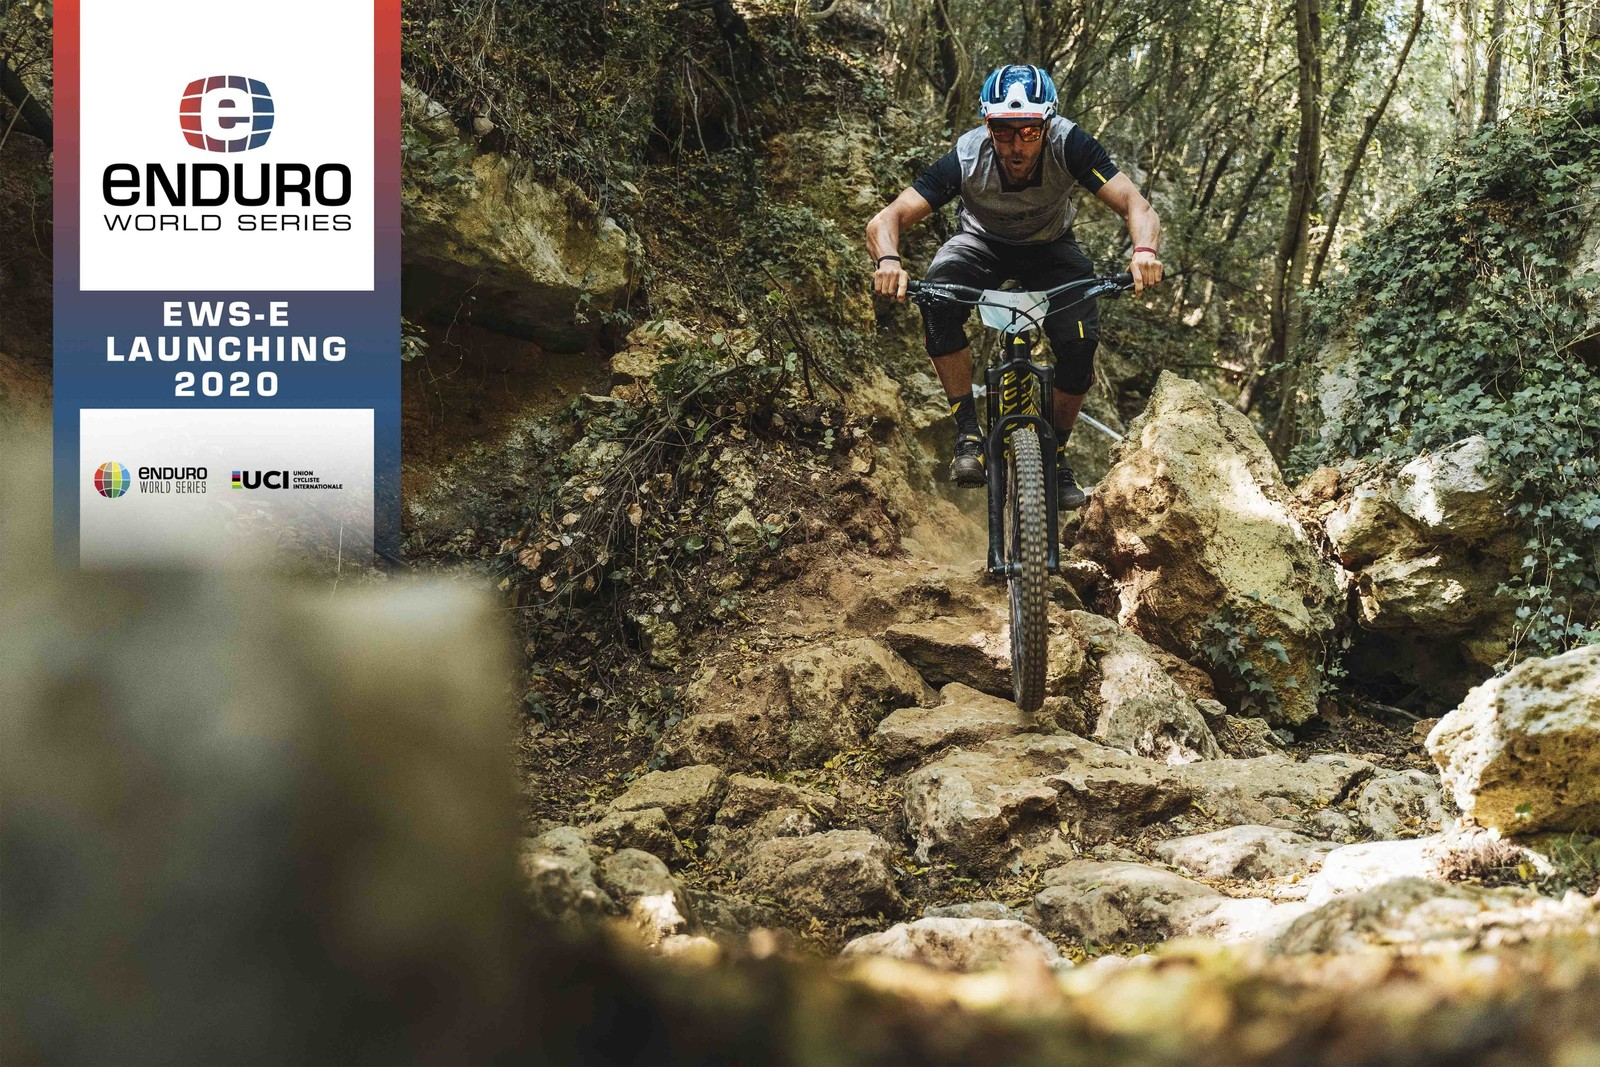 EWS-E will offer a new format of enduro racing that features both technical climbs and descents